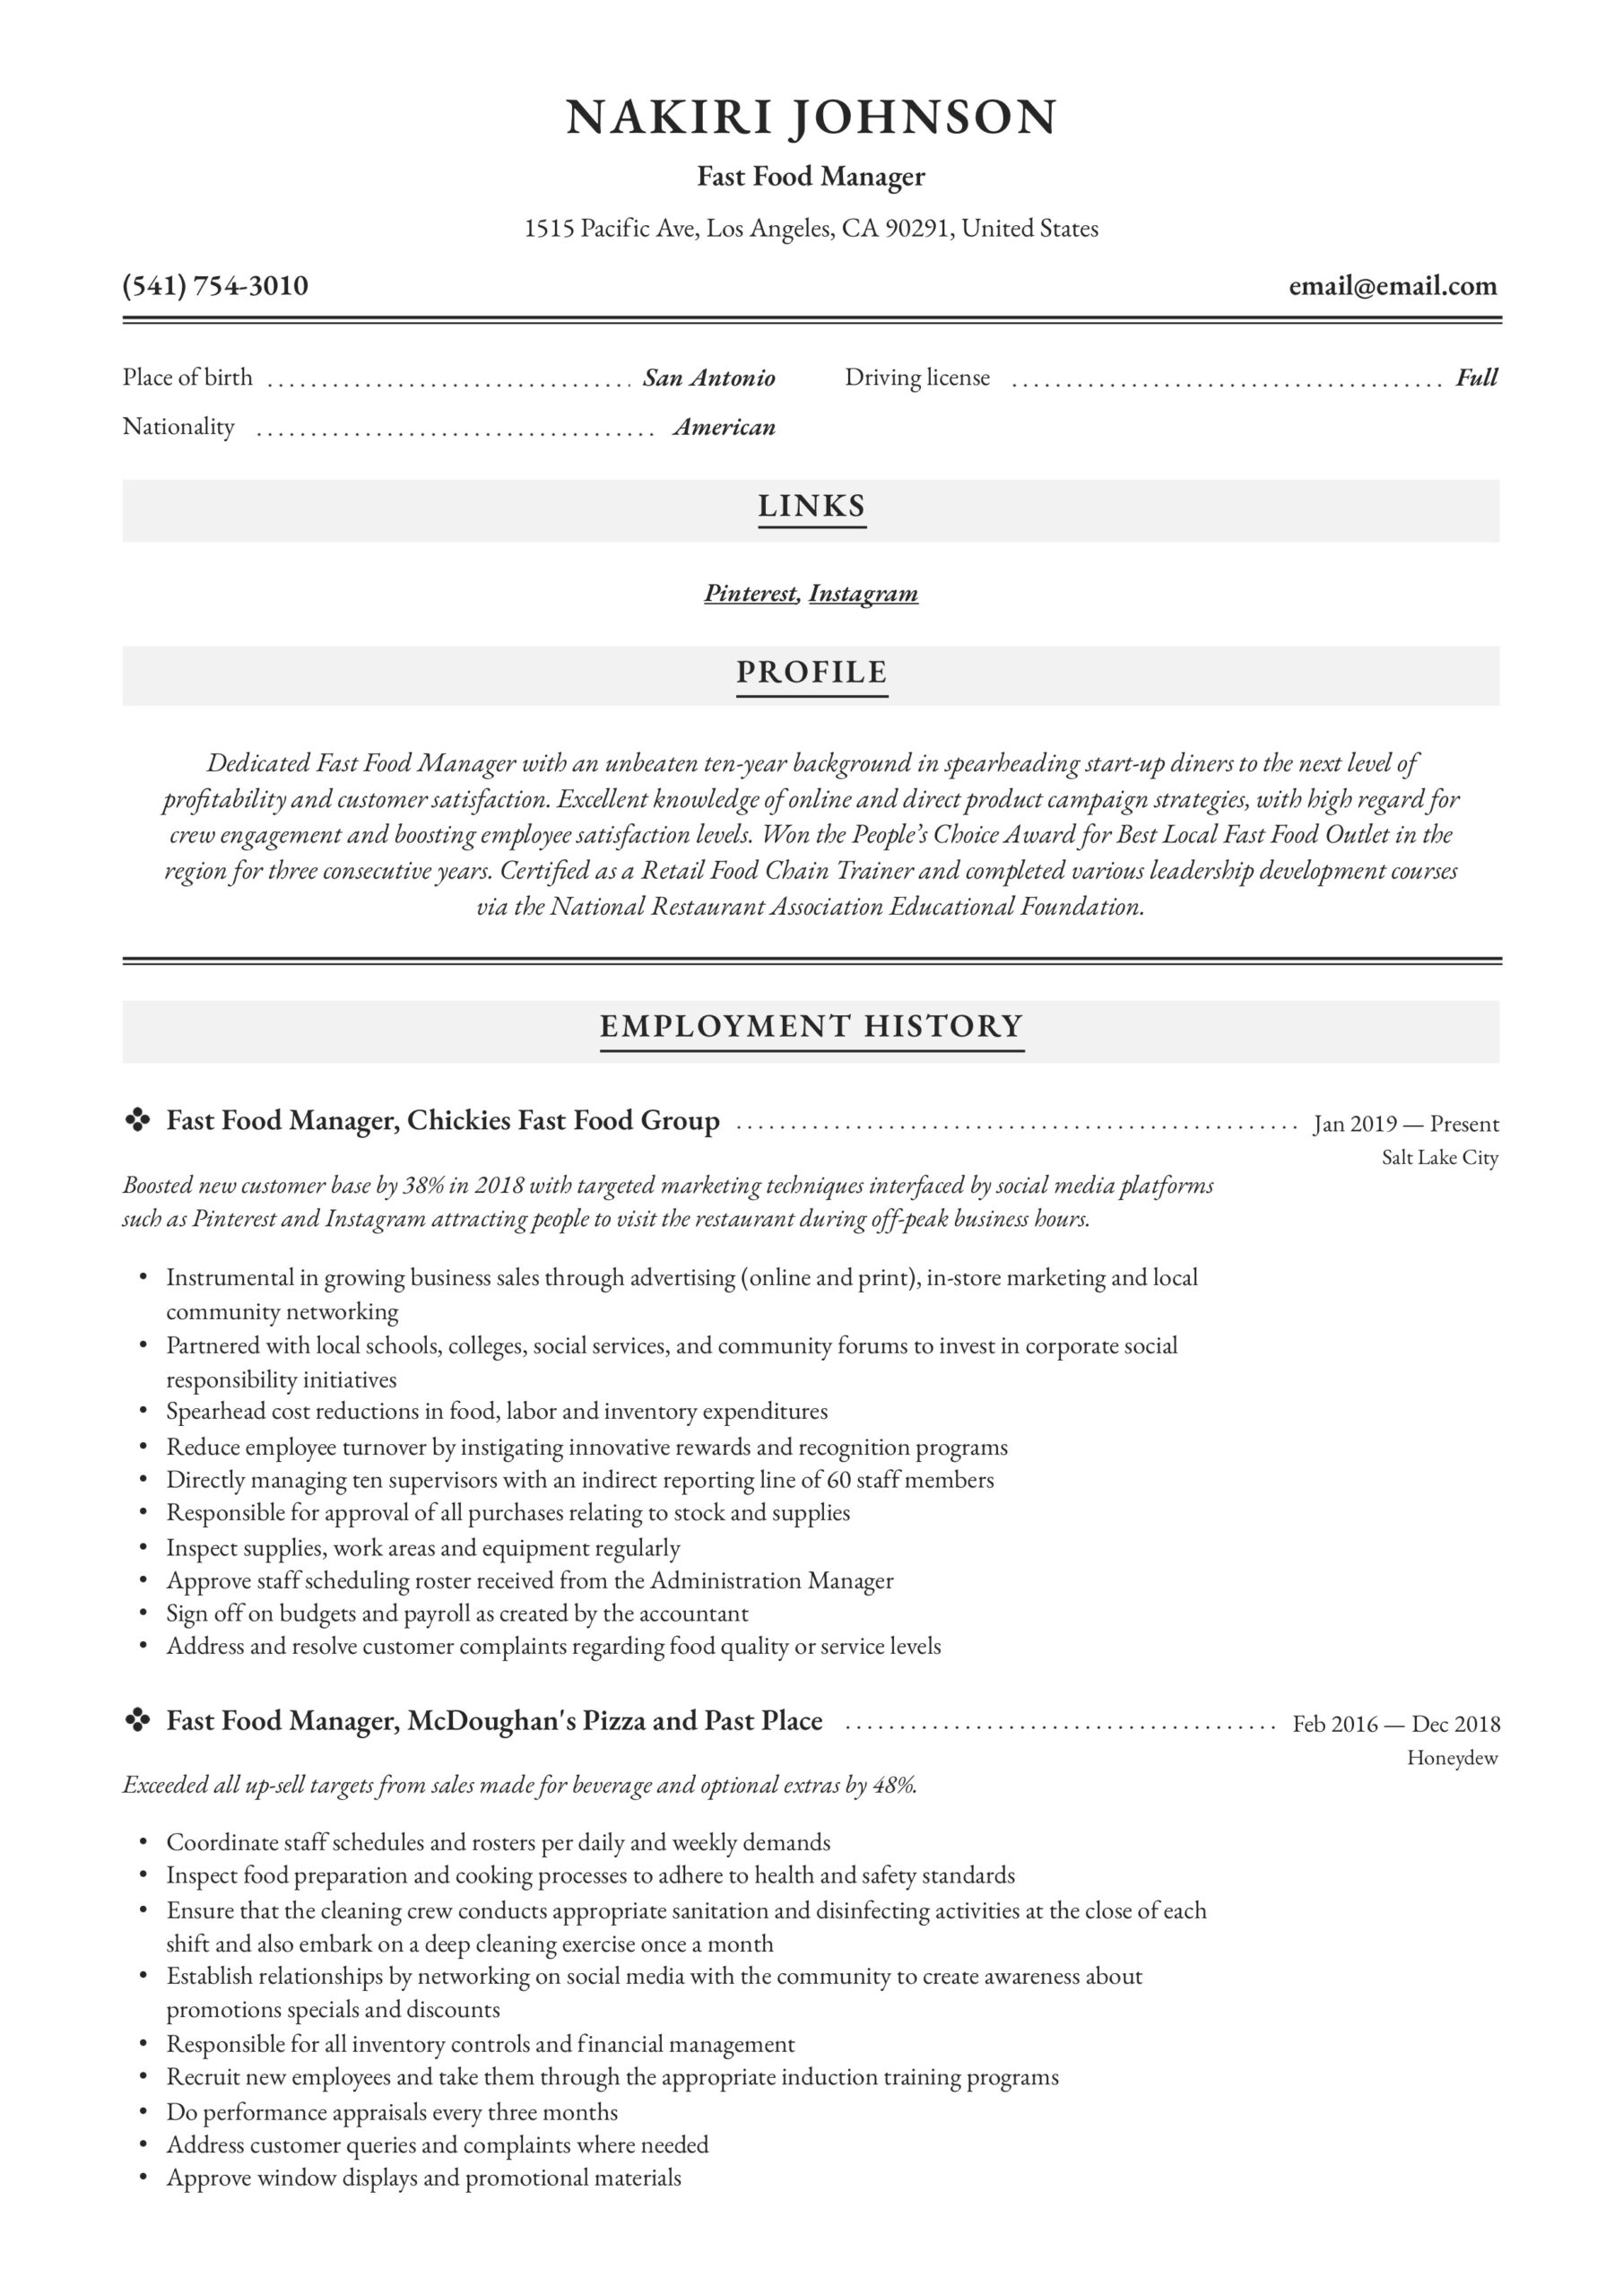 fast food manager resume writing guide examples kitchen summary value proposition cover Resume Kitchen Manager Resume Summary